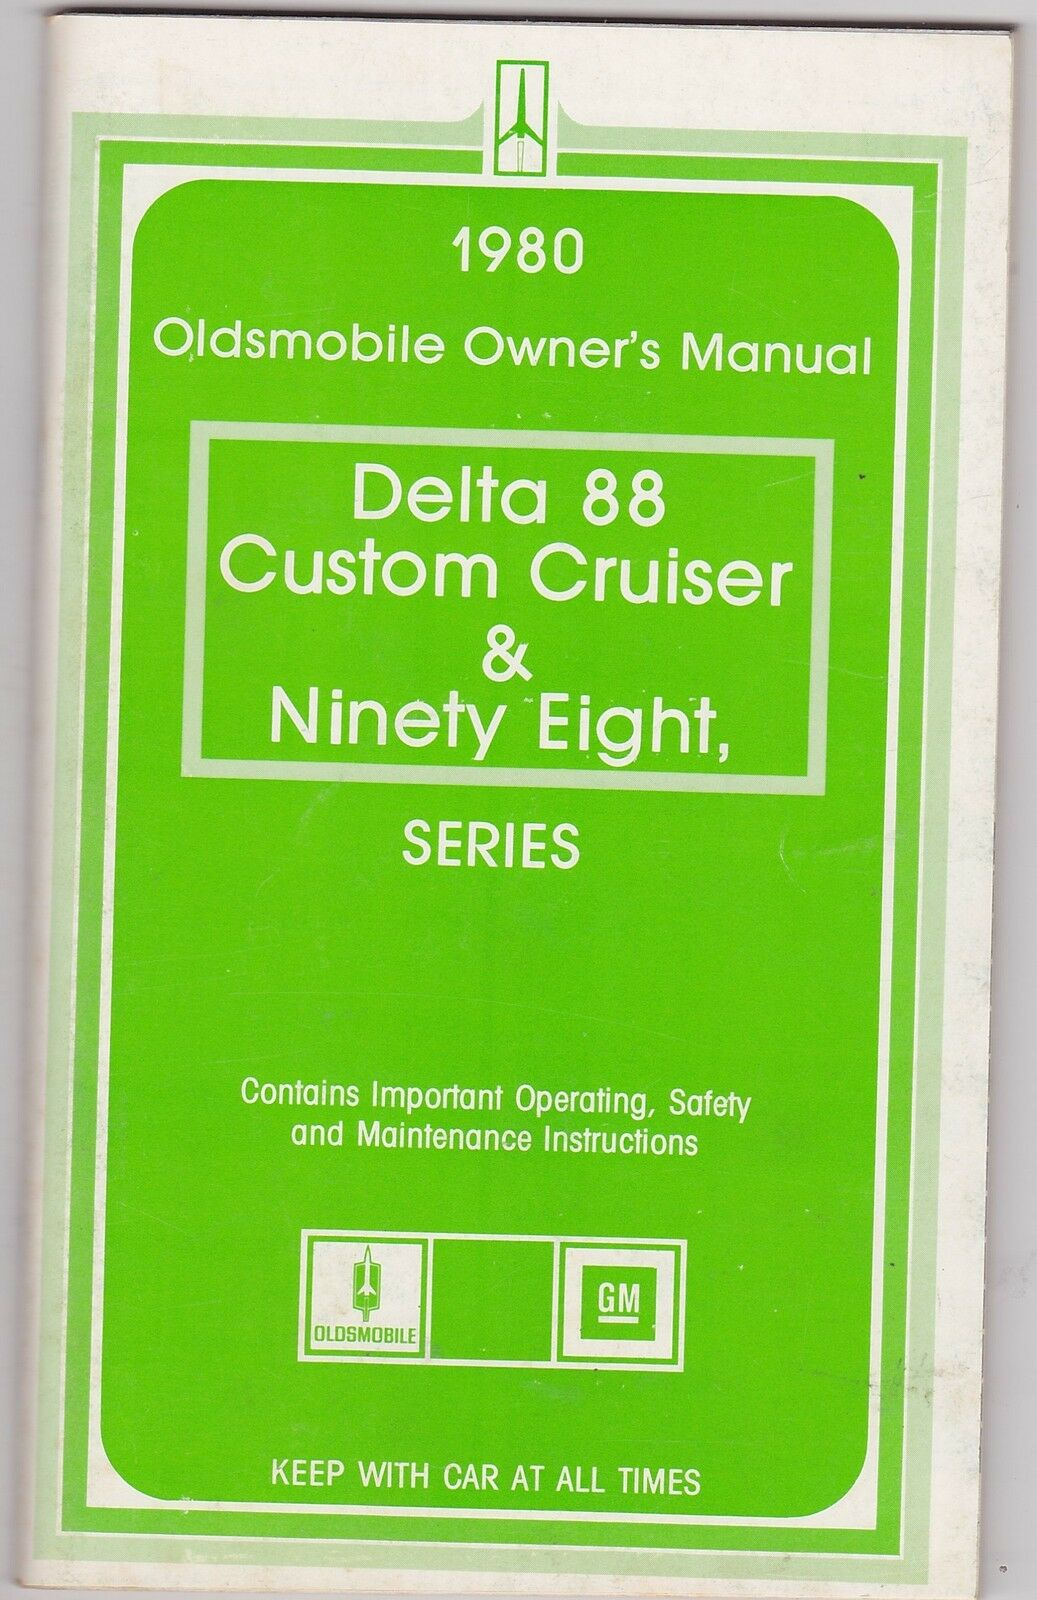 1980 OLDSMOBILE DELTA 88 - NINETY EIGHT vintage original car owners manual  1 of 1Only 1 available ...